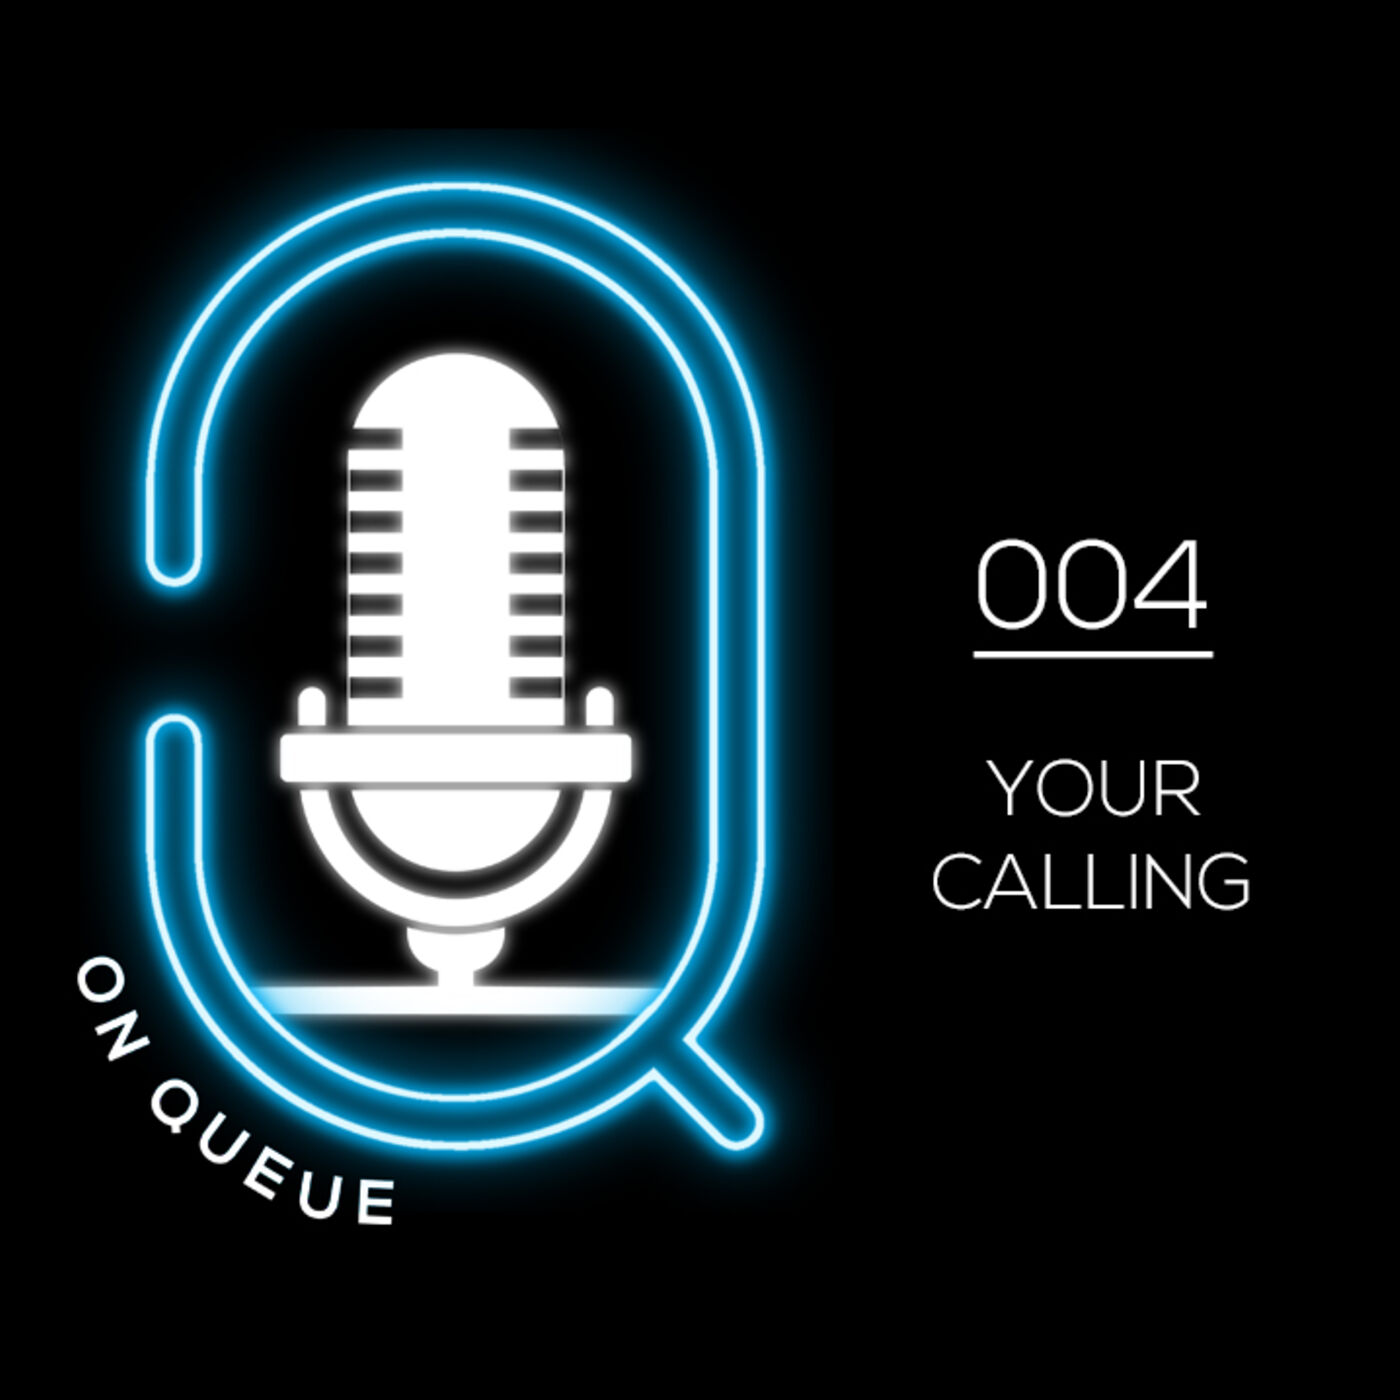 Q on queue 004: Your Calling